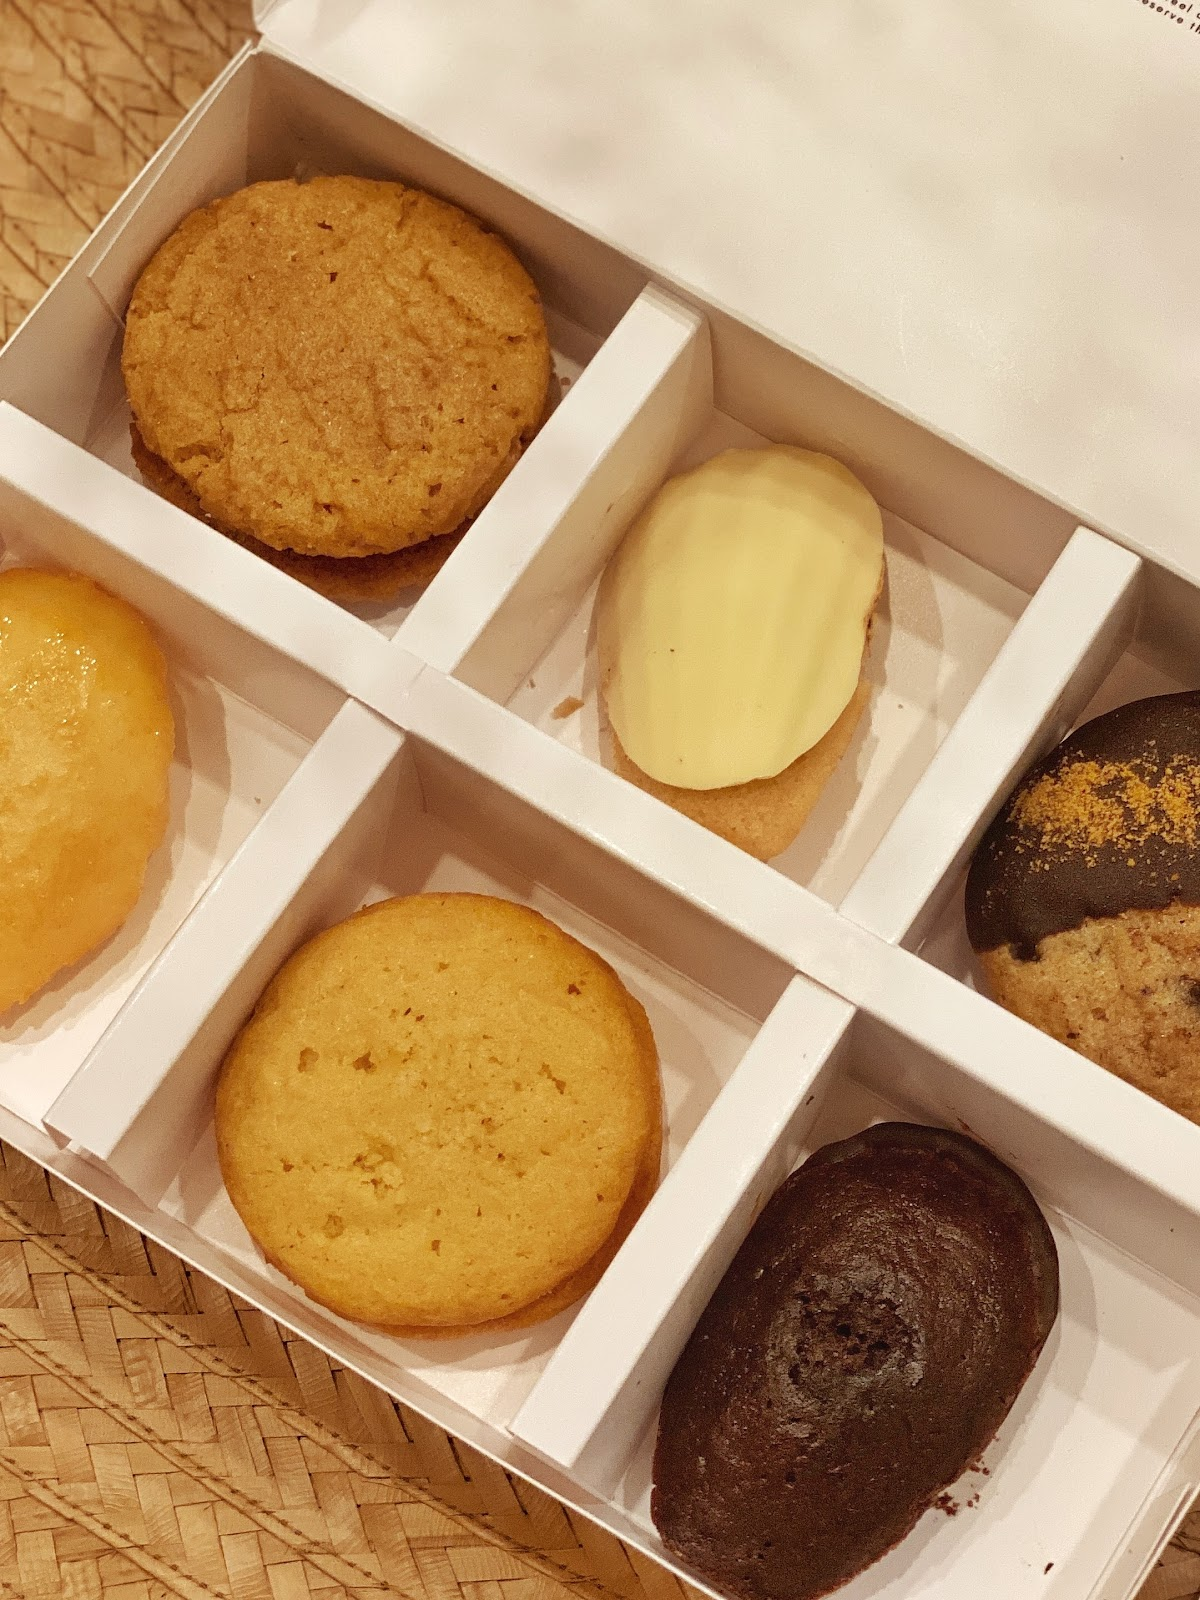 Boxed pastry treats from Eaterior, a local Davaoeño pastry shop.